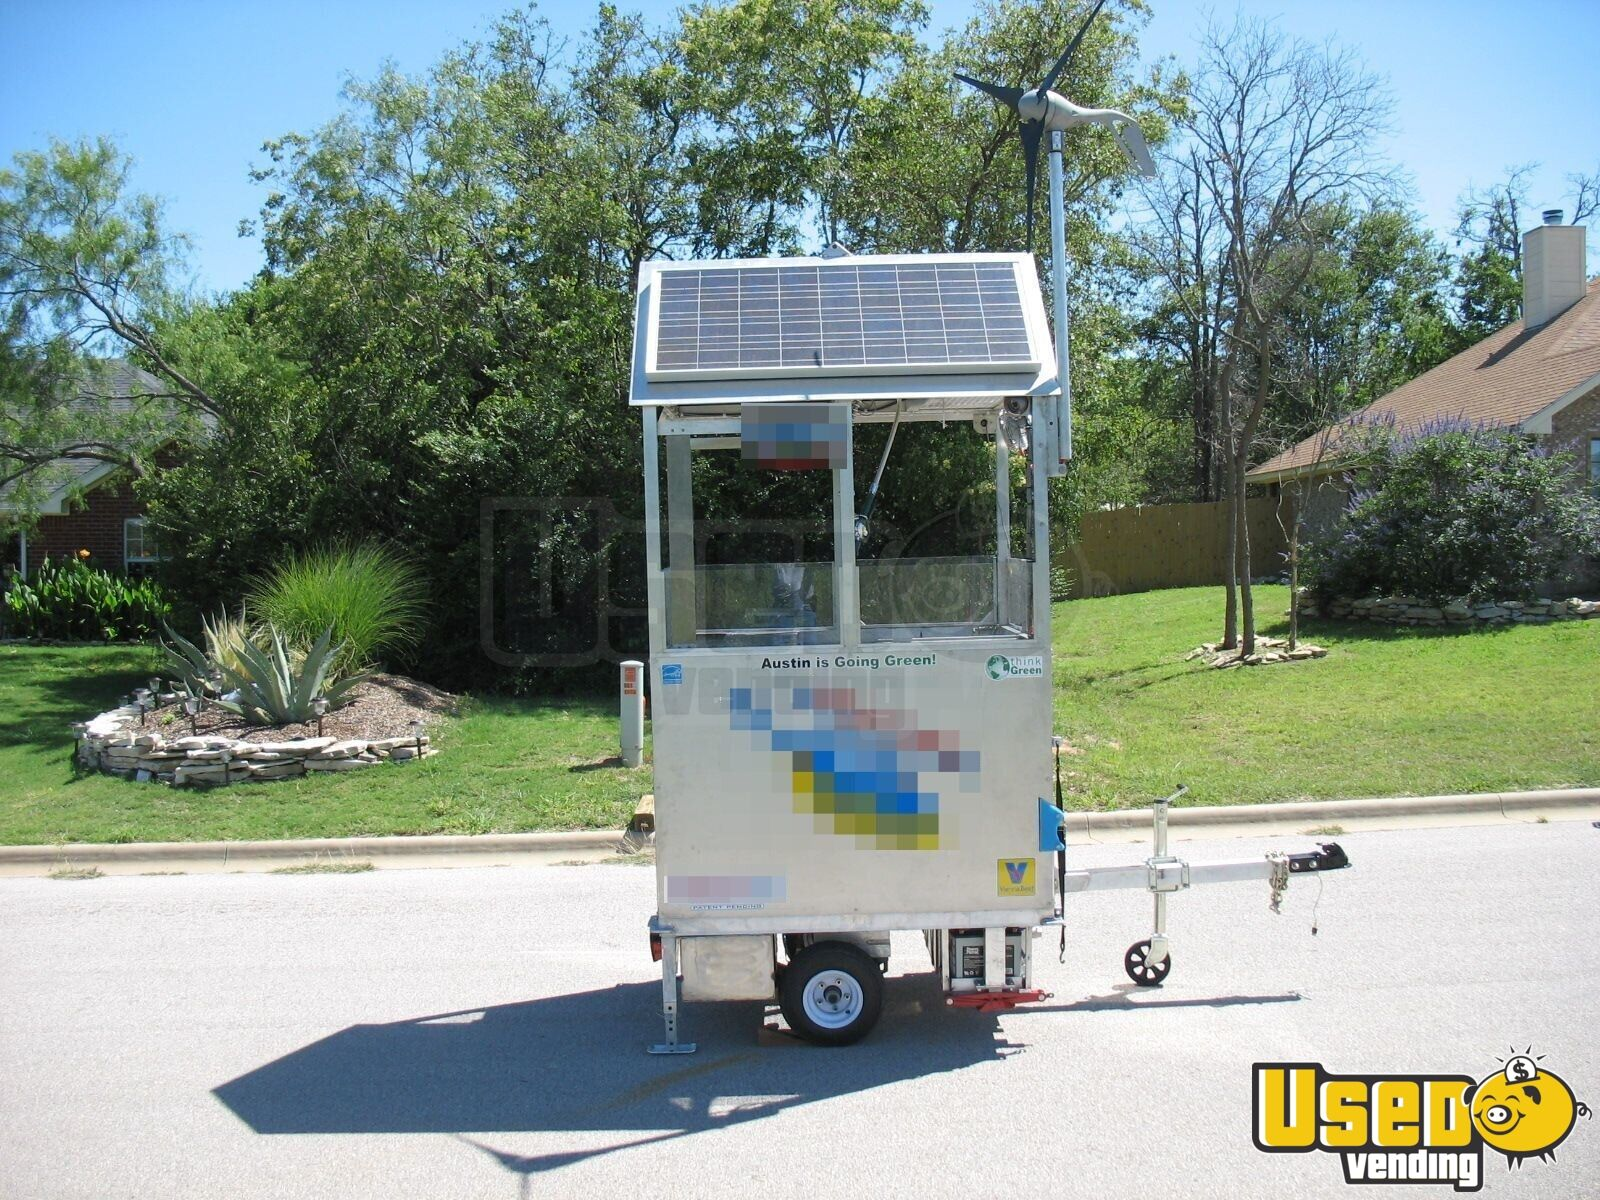 2009 Top Gun Top Dog Self Sufficient Mobile, Model Slt Food Cart 48 Texas for Sale - 48